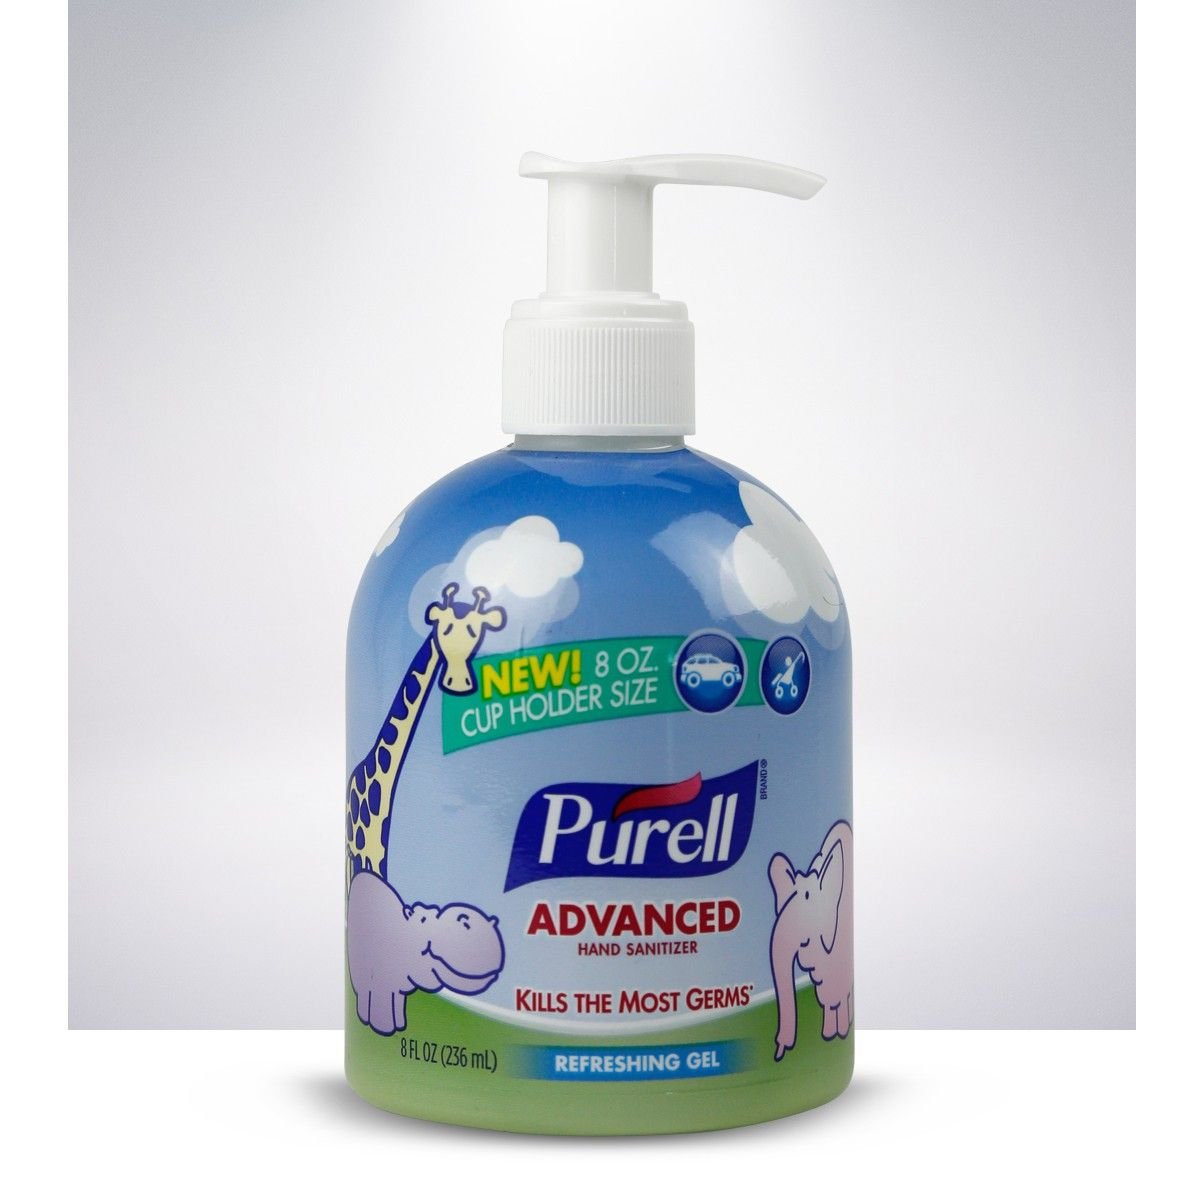 Keep Purell Advanced Hand Sanitizer For Baby With You When Out And